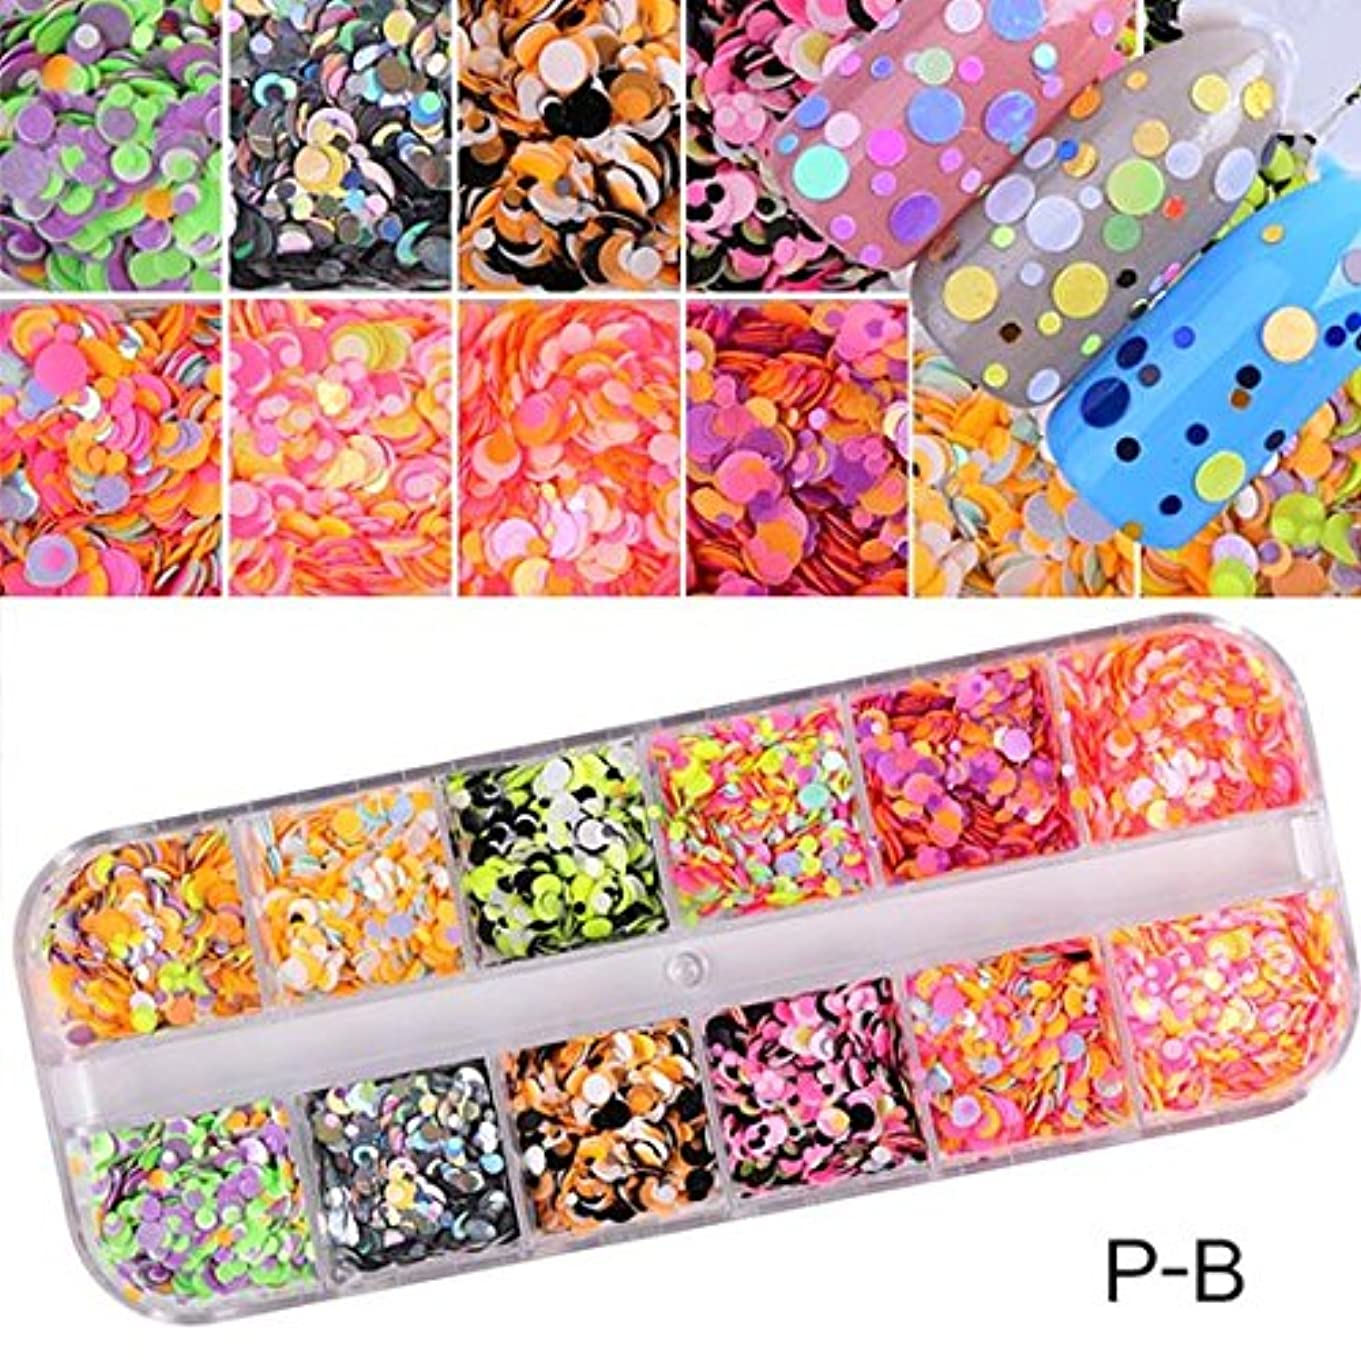 うまれた留め金削除する1 Set Dazzling Round Nail Glitter Sequins Dust Mixed 12 Grids 1/2/3mm DIY Charm Polish Flakes Decorations Manicure...